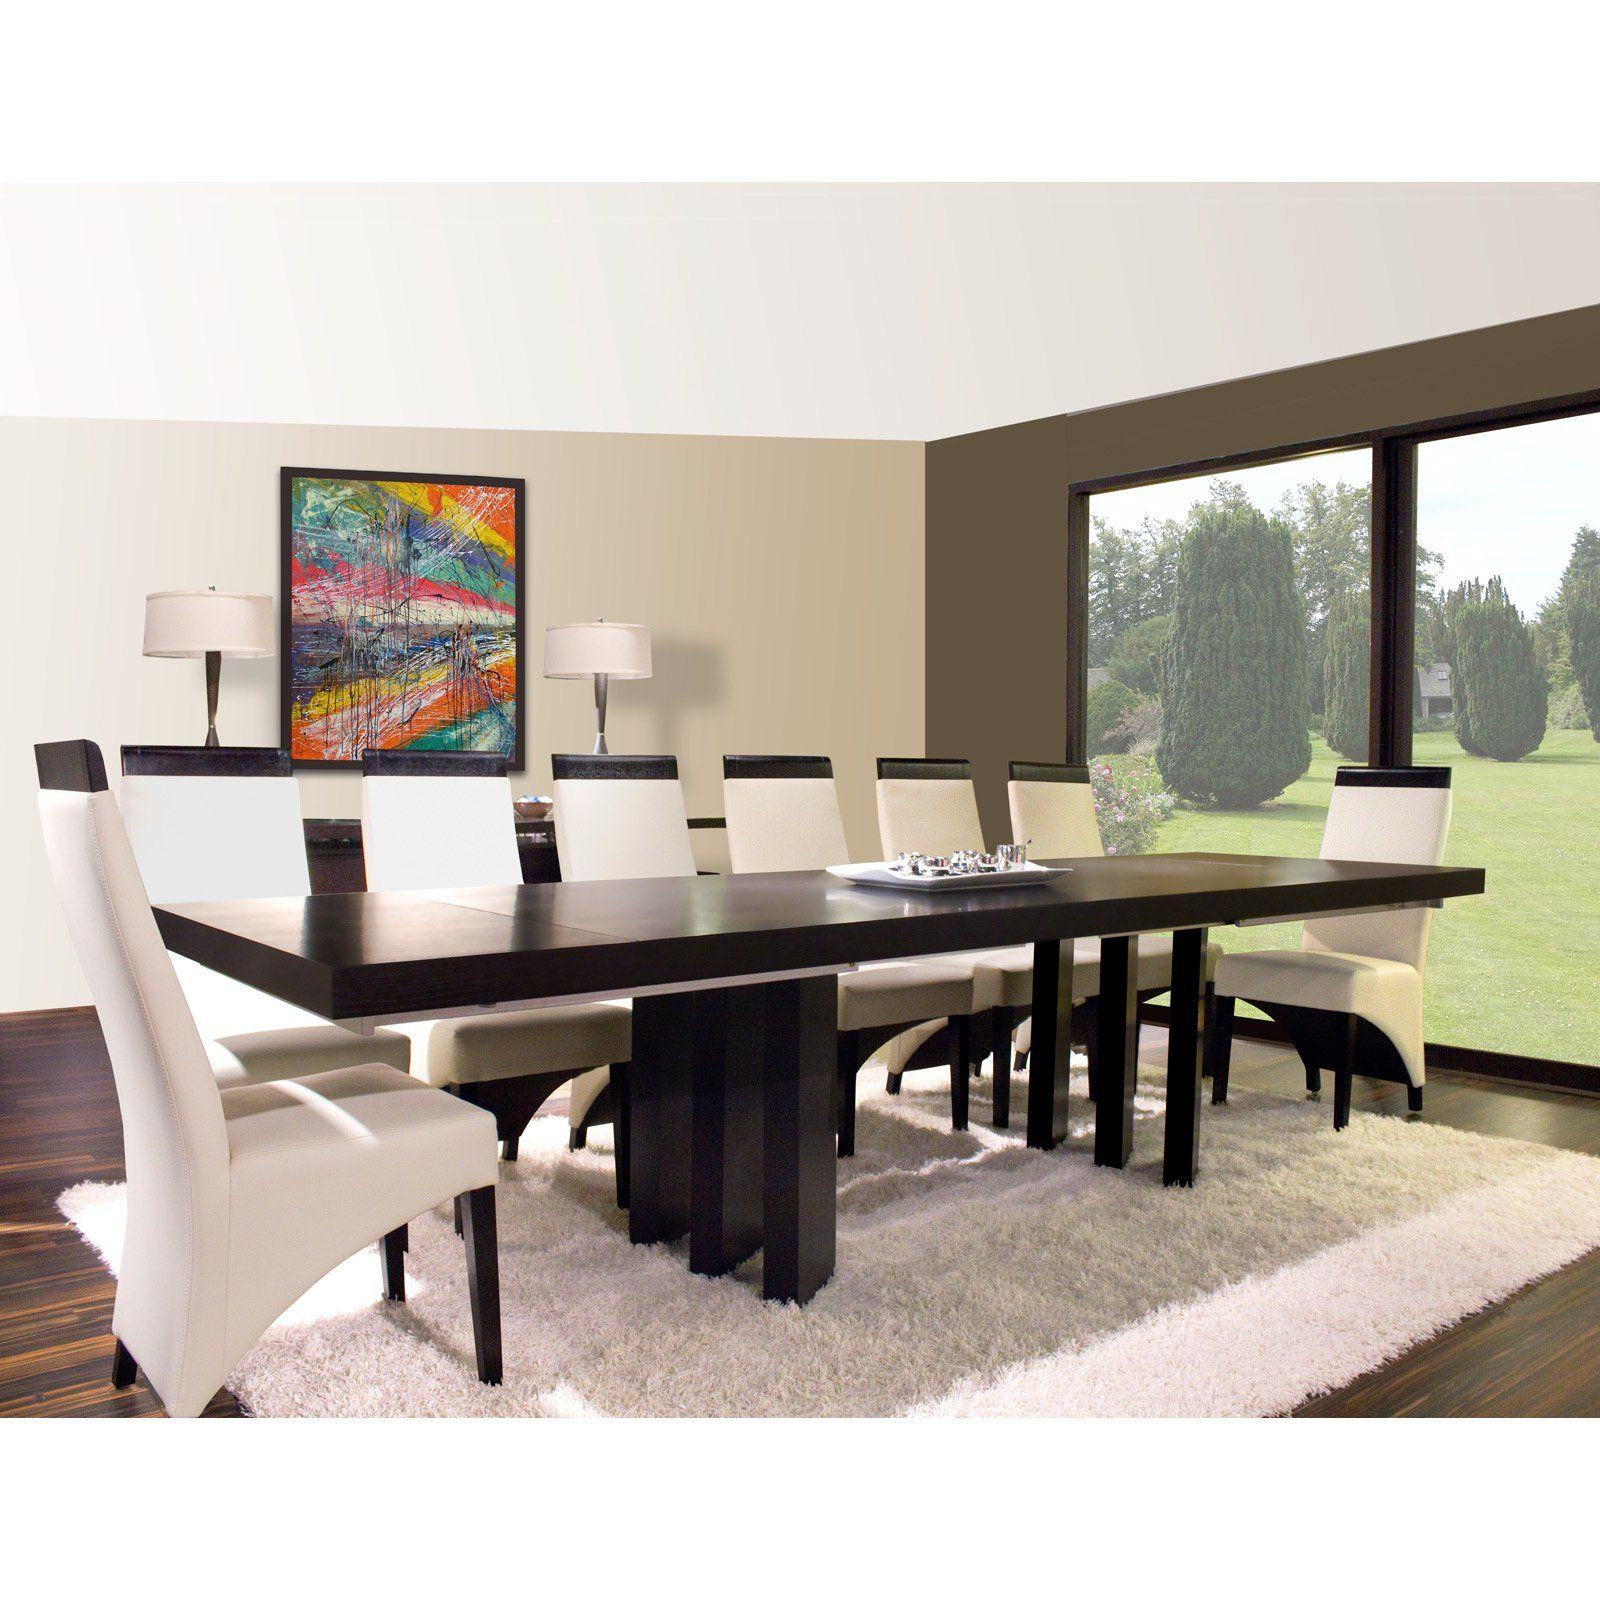 cd97c1bd34249 Verona Rectangular Extension Dining Table - Wenge - The Verona Rectangular  Extension Dining Table - Wenge is straightforward contemporary style.